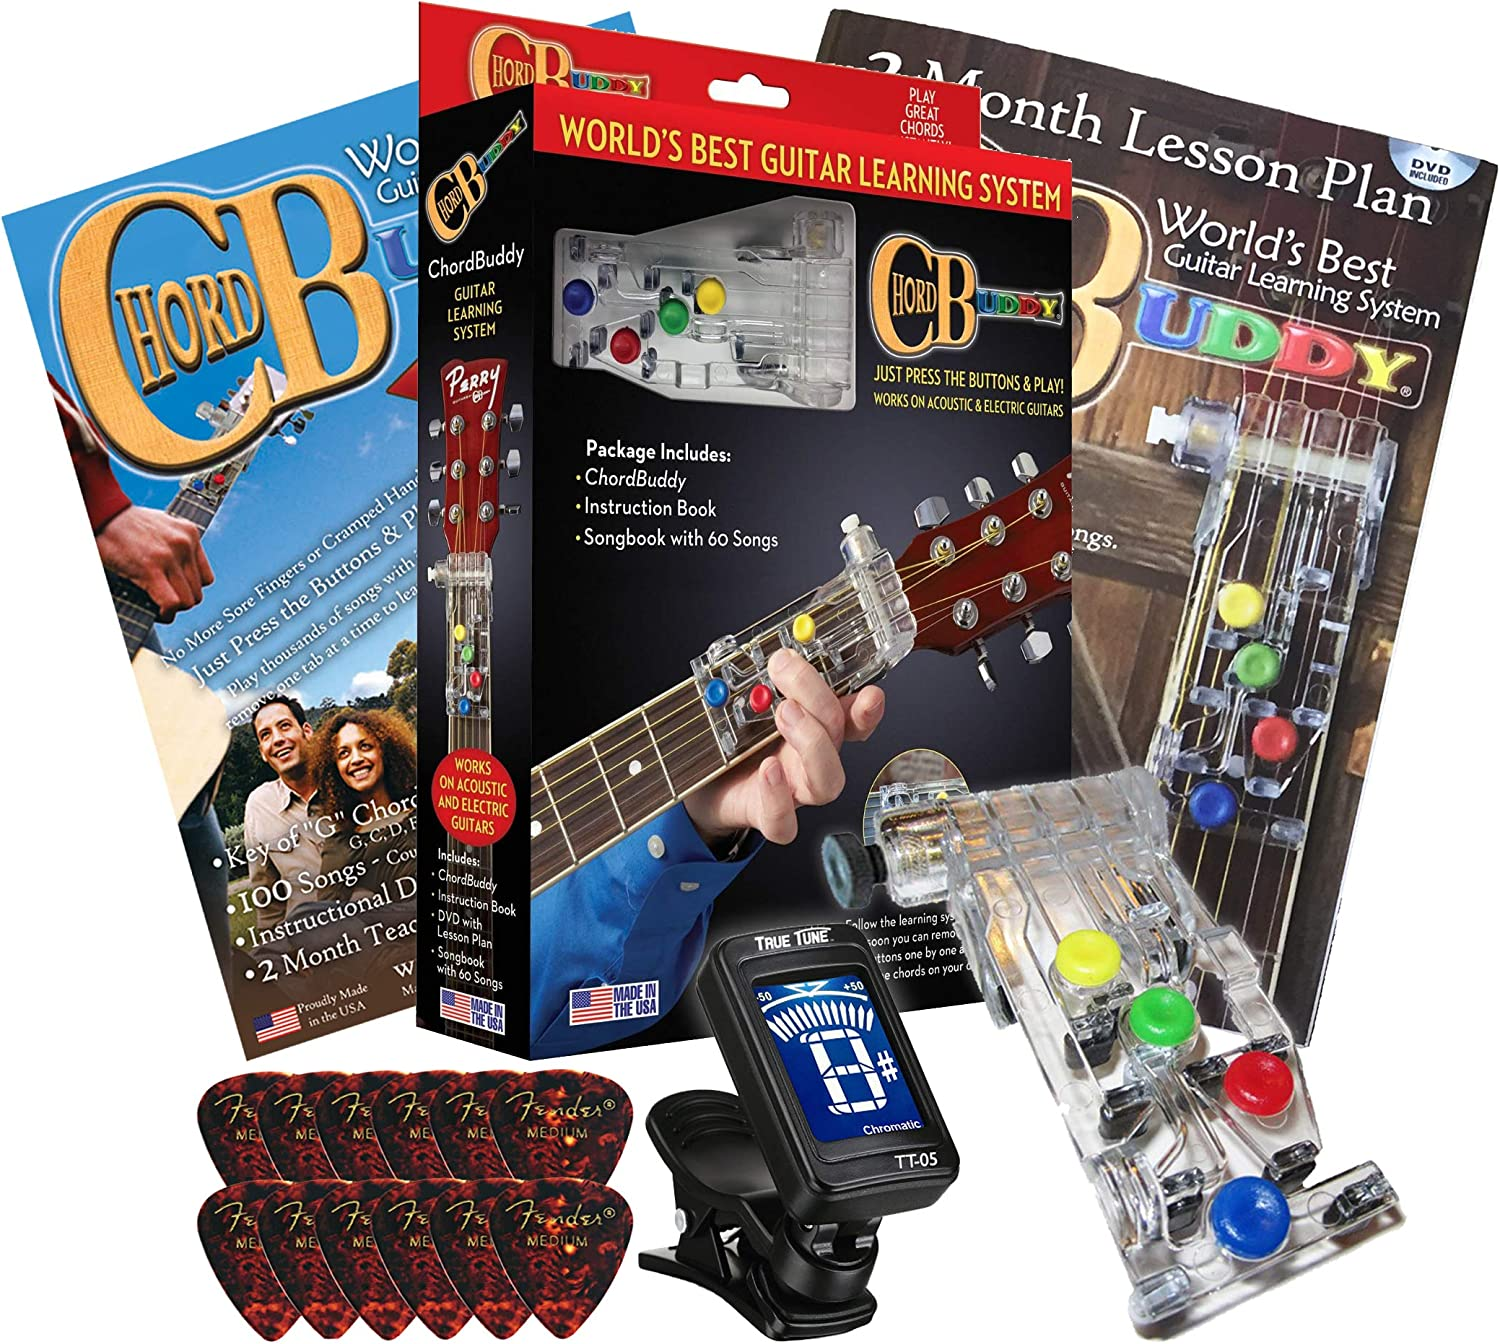 Chord Buddy Guitar Learning System with True Tune Chromatic Tuner & Picks  Package   Play Guitar Today with this Shark Tank Product